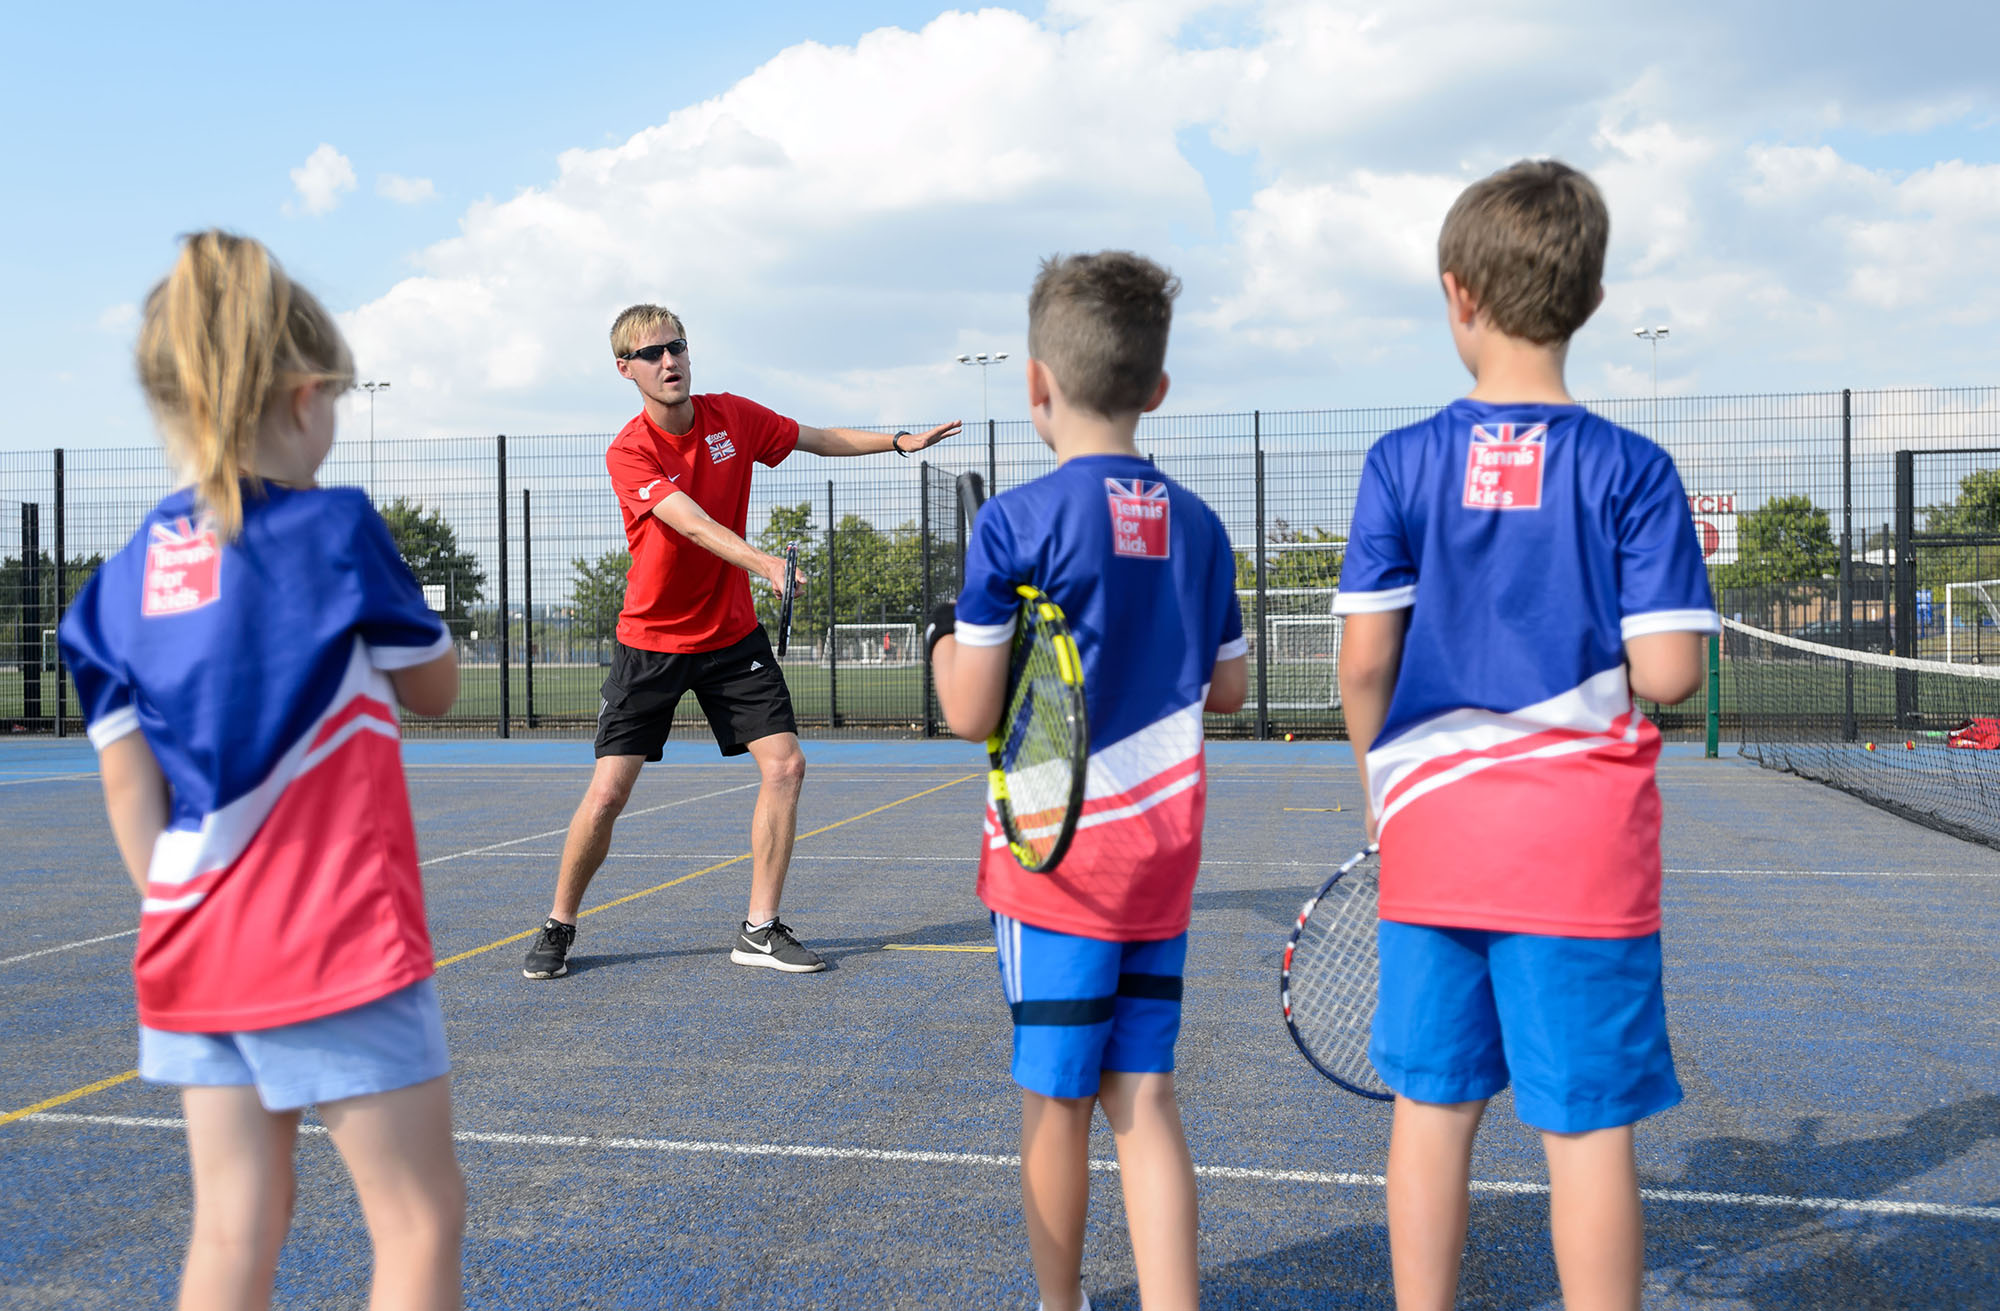 Coach demonstrating a forehand to children at a tennis session